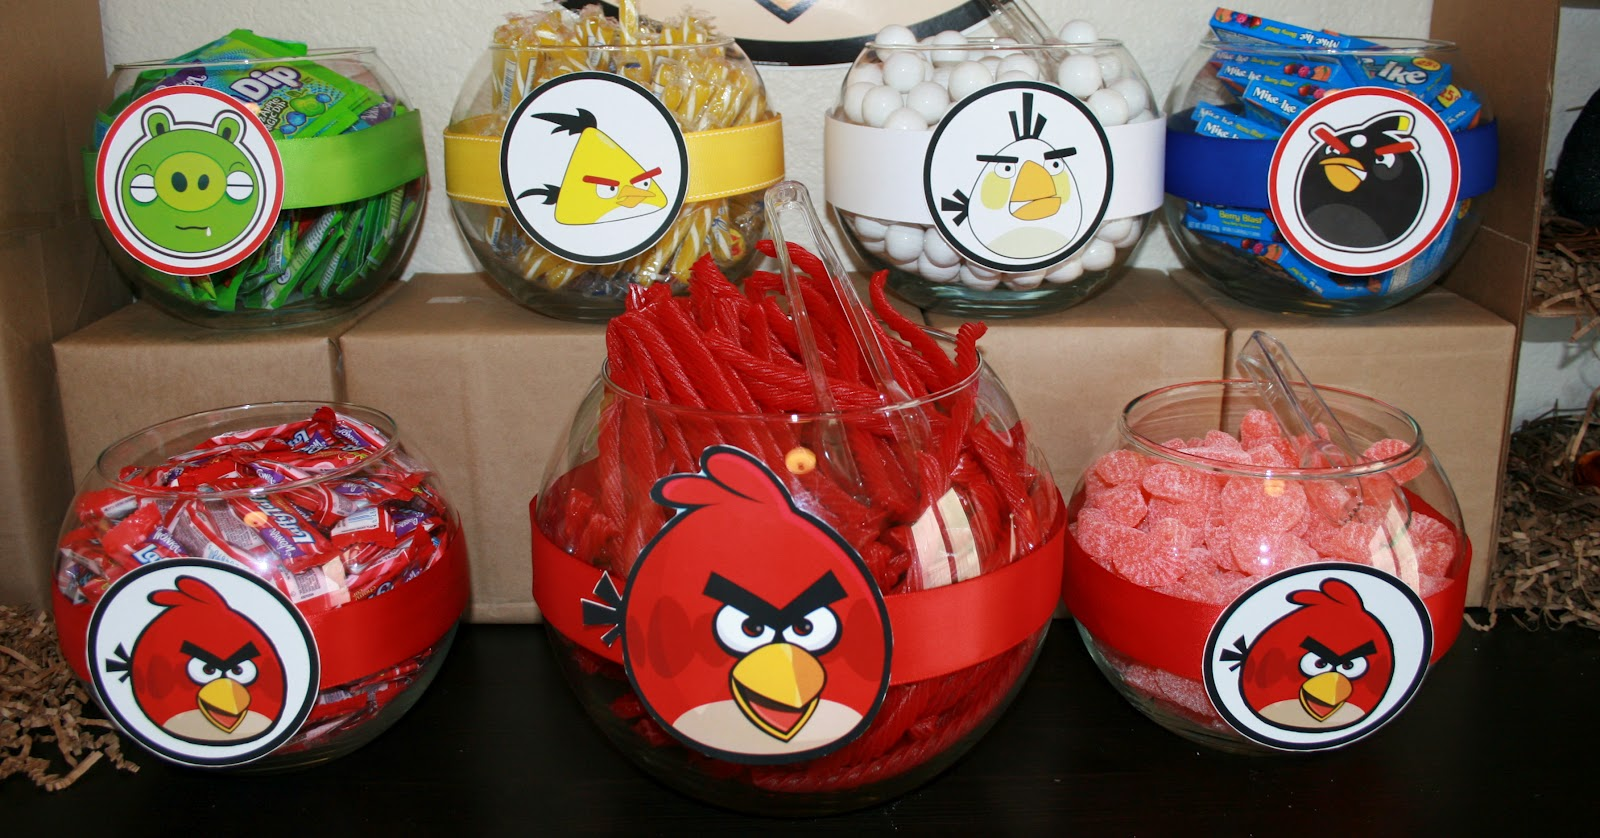 My creative ink angry bird party decorations for Angry birds decoration ideas